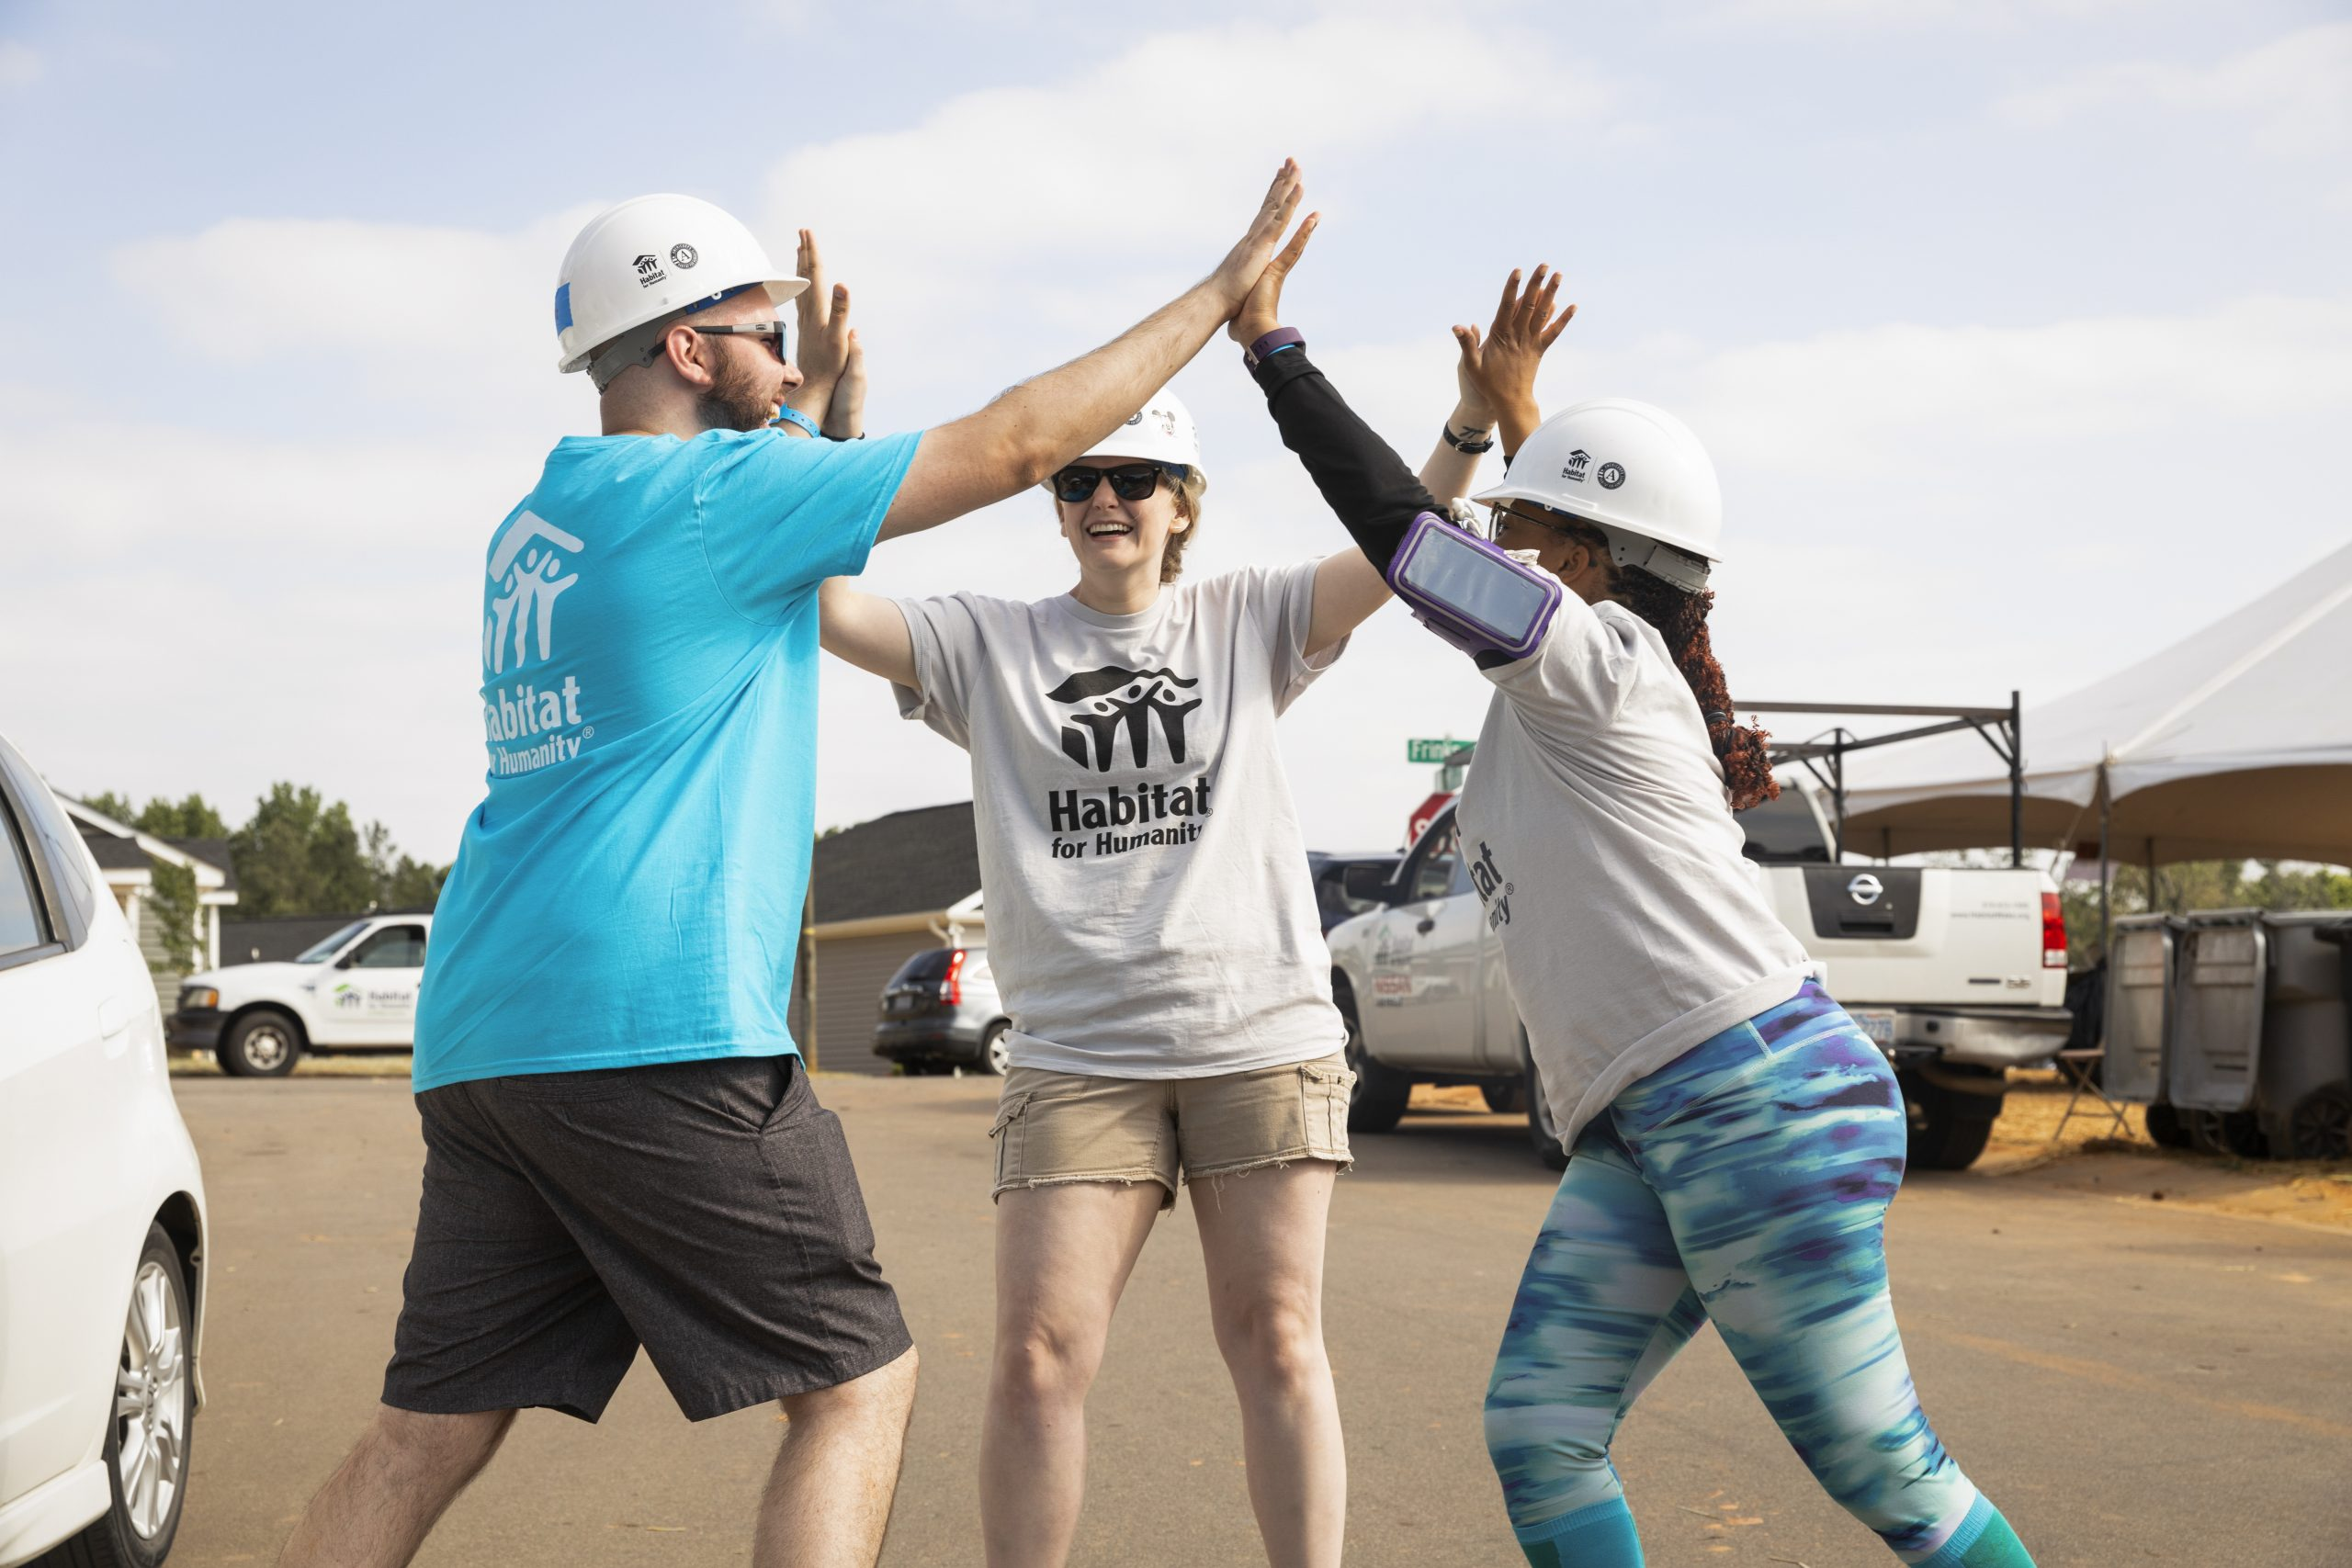 RALEIGH, NORTH CAROLINA (05/22/19) - More than 300 AmeriCorps National and VISTA members and AmeriCorps Alumni from across the United States come together with Wake County Habitat for Humanity in Raleigh, North Carolina, for 2019 Build-A-Thon.